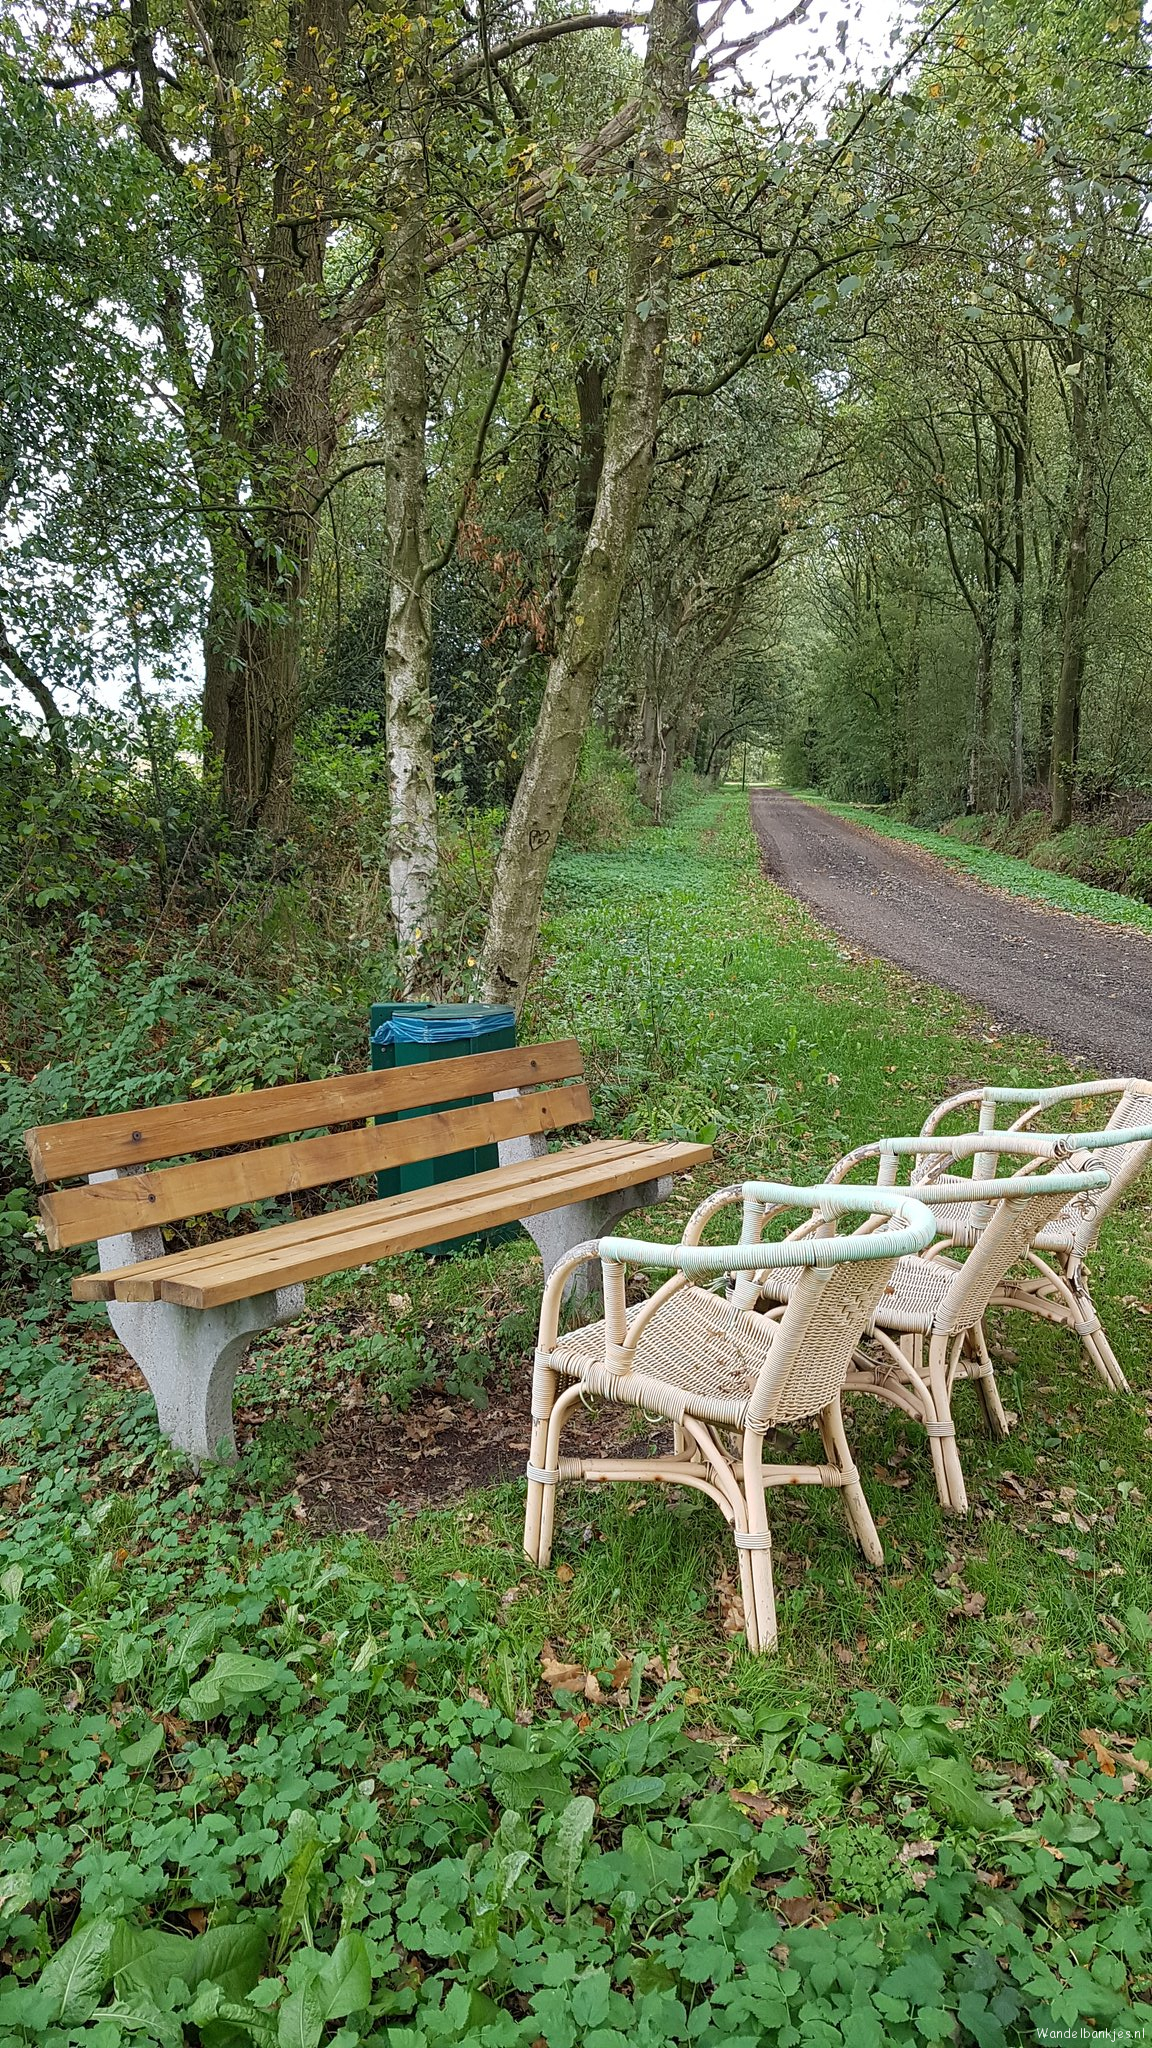 rt-gertdewit-walking-bench-well-actually-more-a-seating-knapsack-in-gees-drenthe-walking-bench-https-t-co-rtwtno1vkl